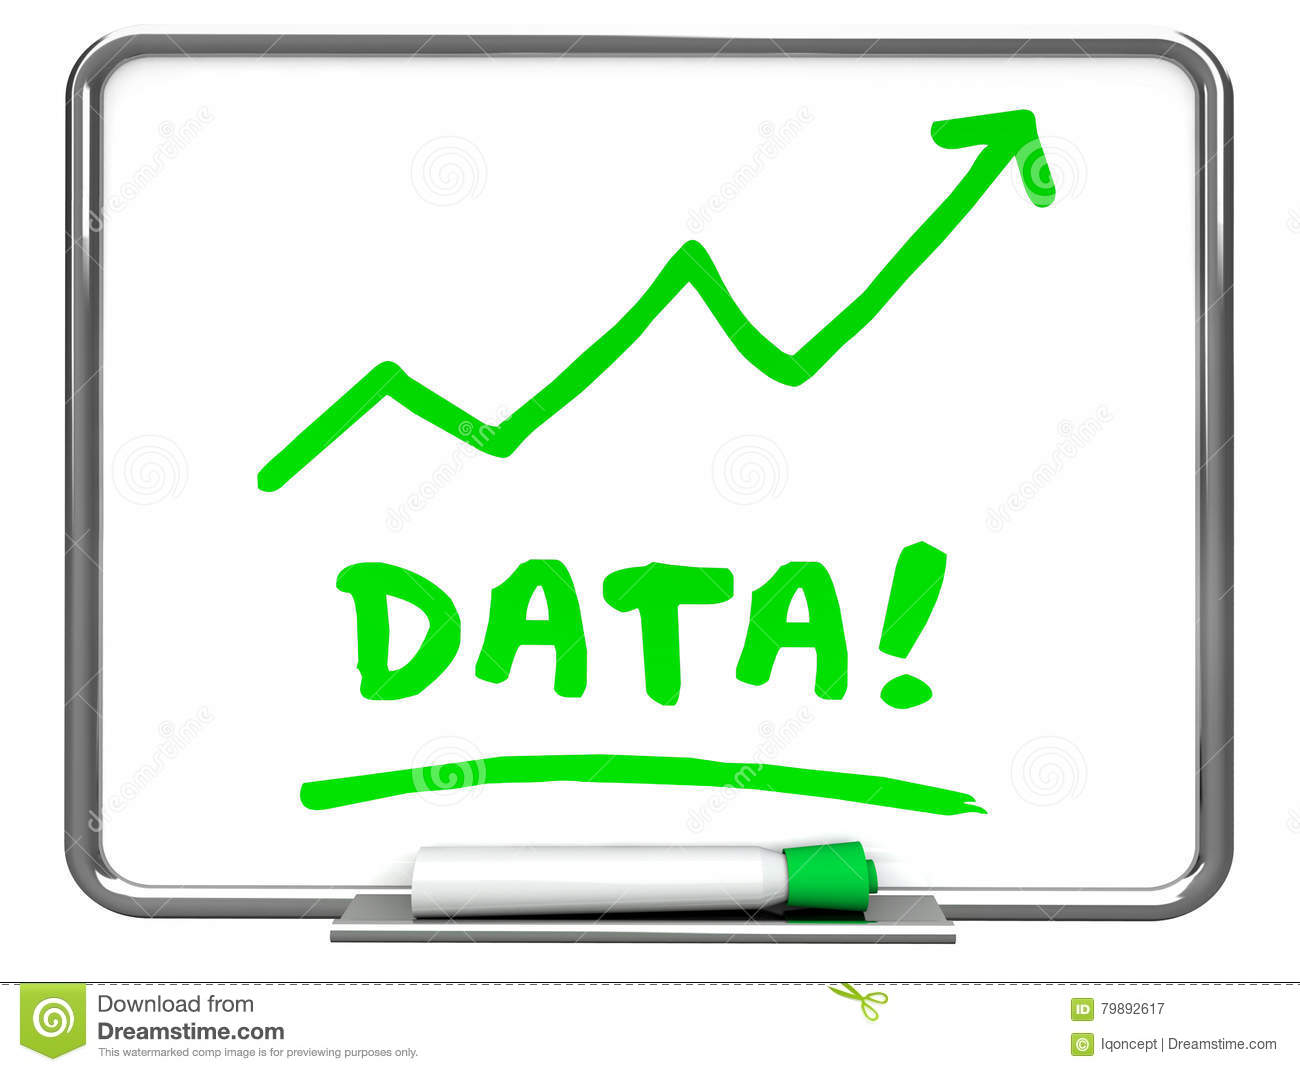 How to stop collecting data